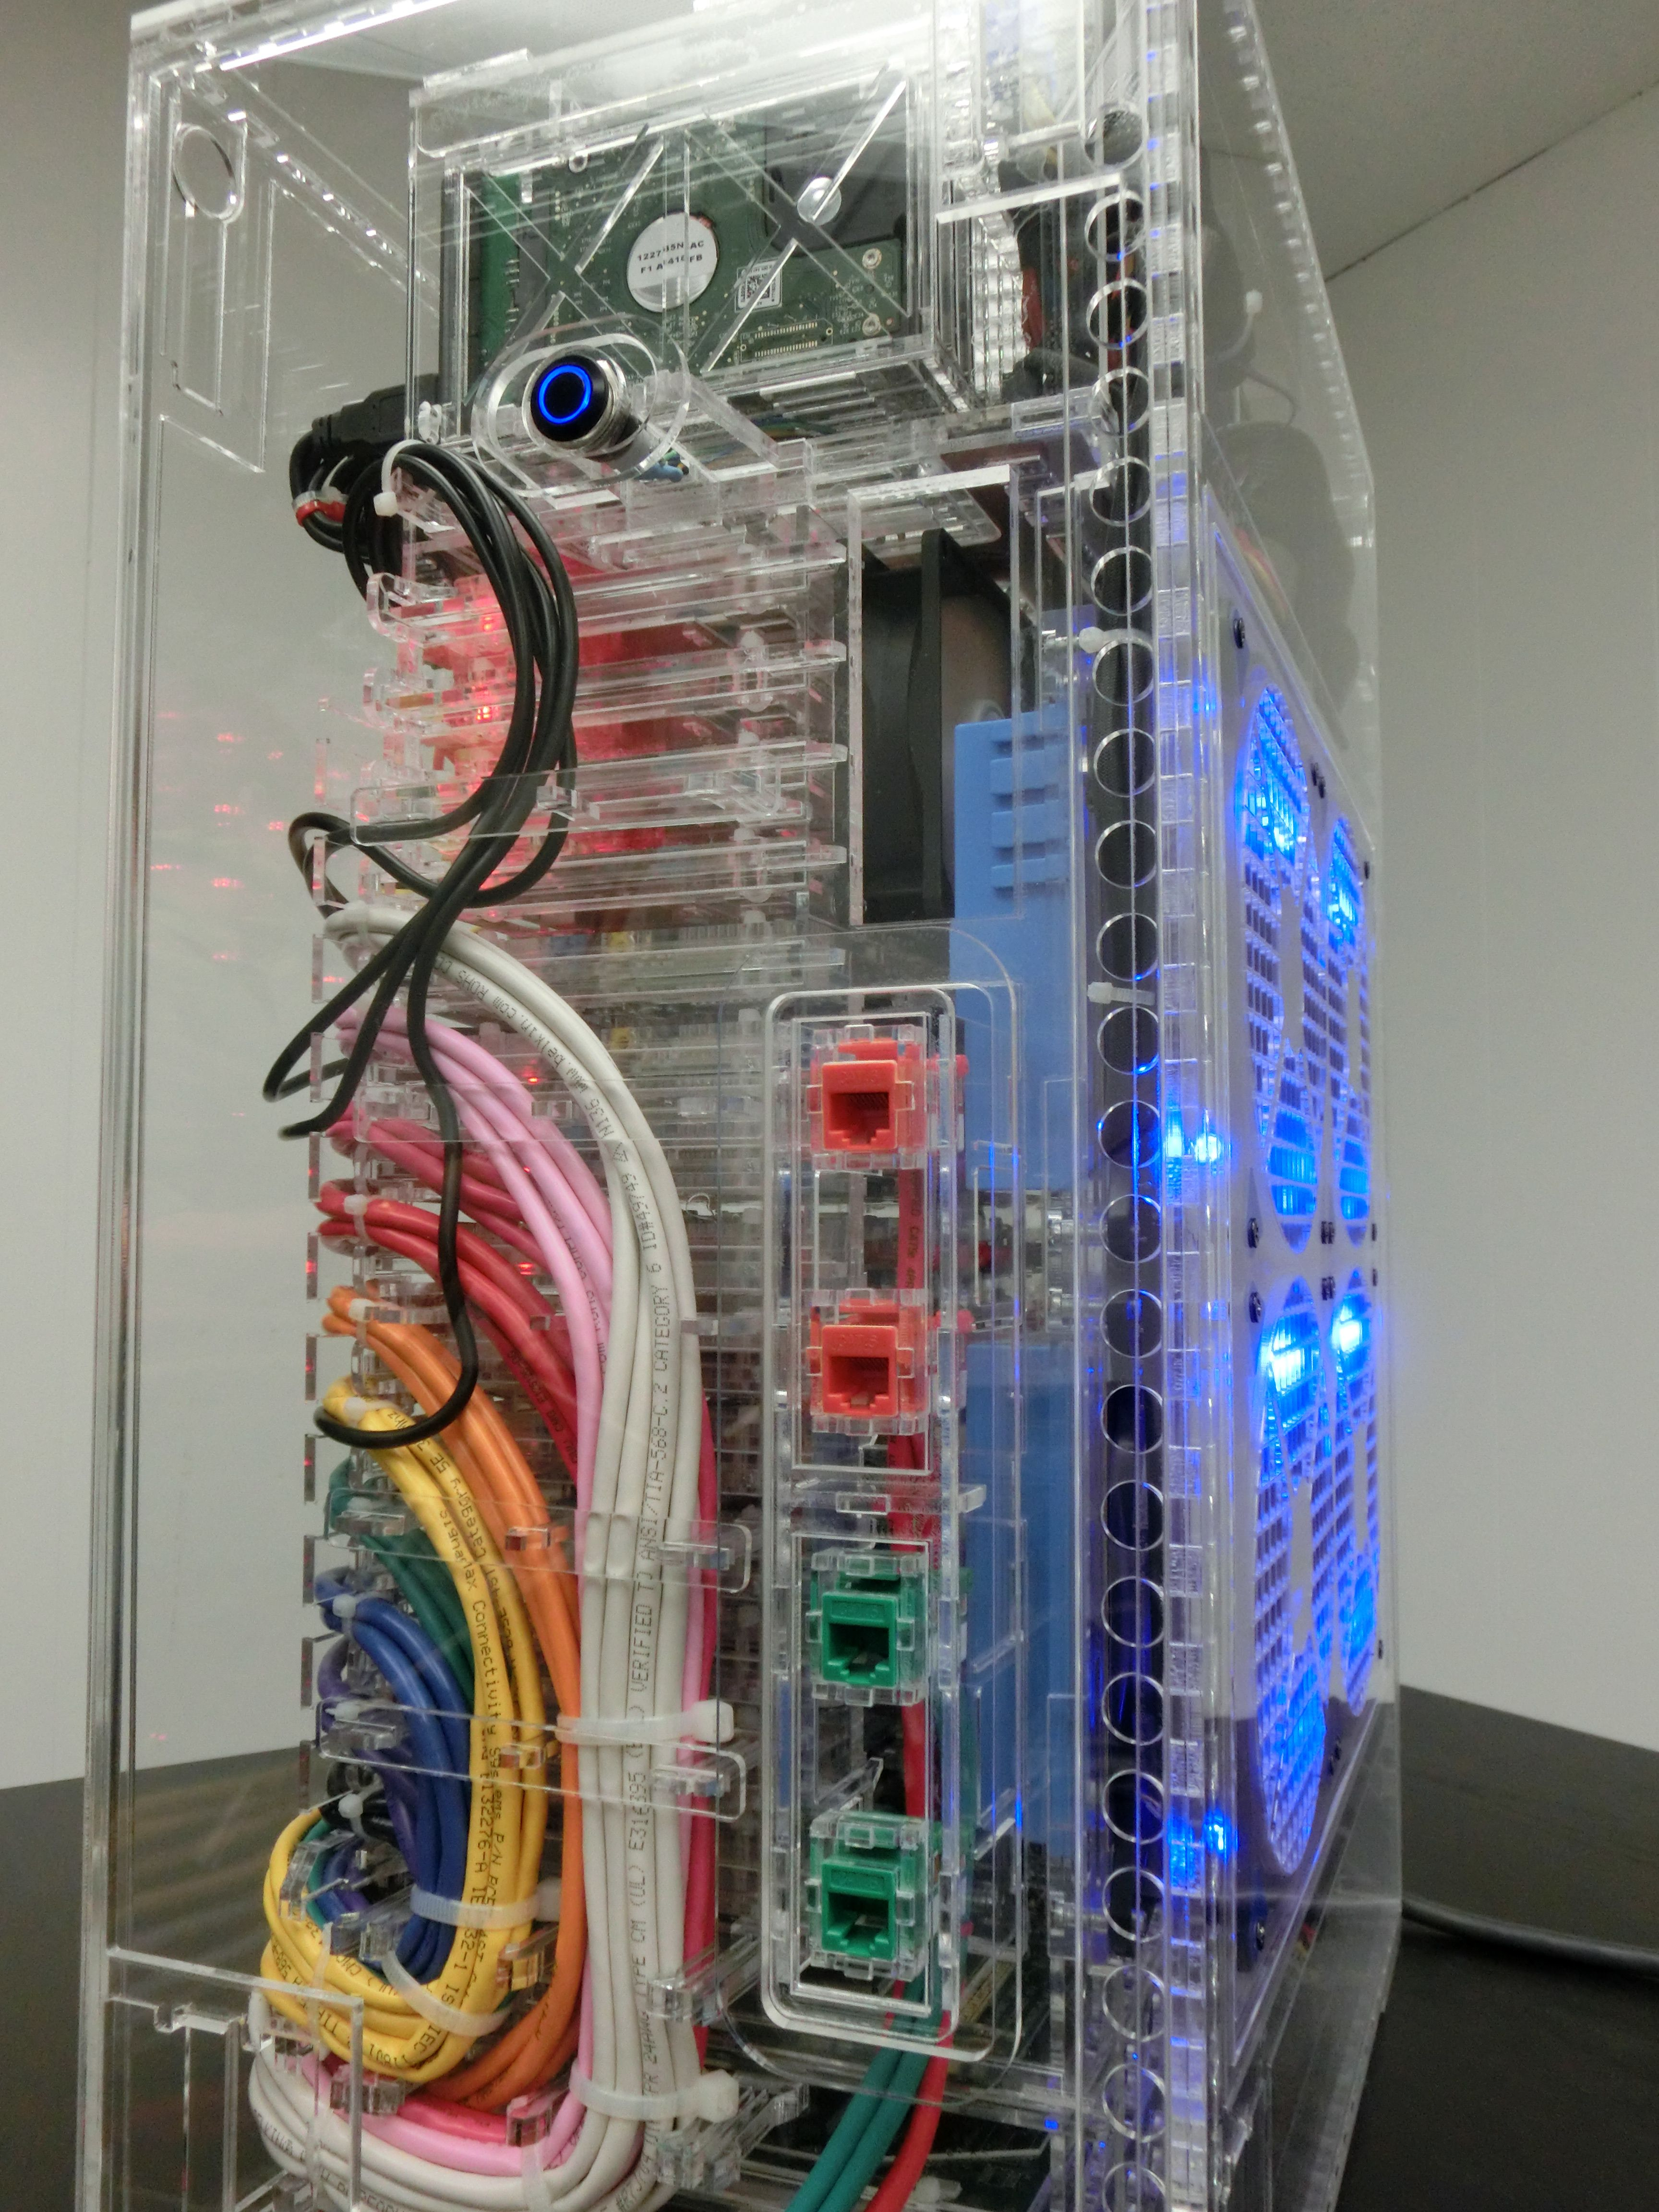 Building a miniature supercomputer as a project in batchelors degree final year project!?